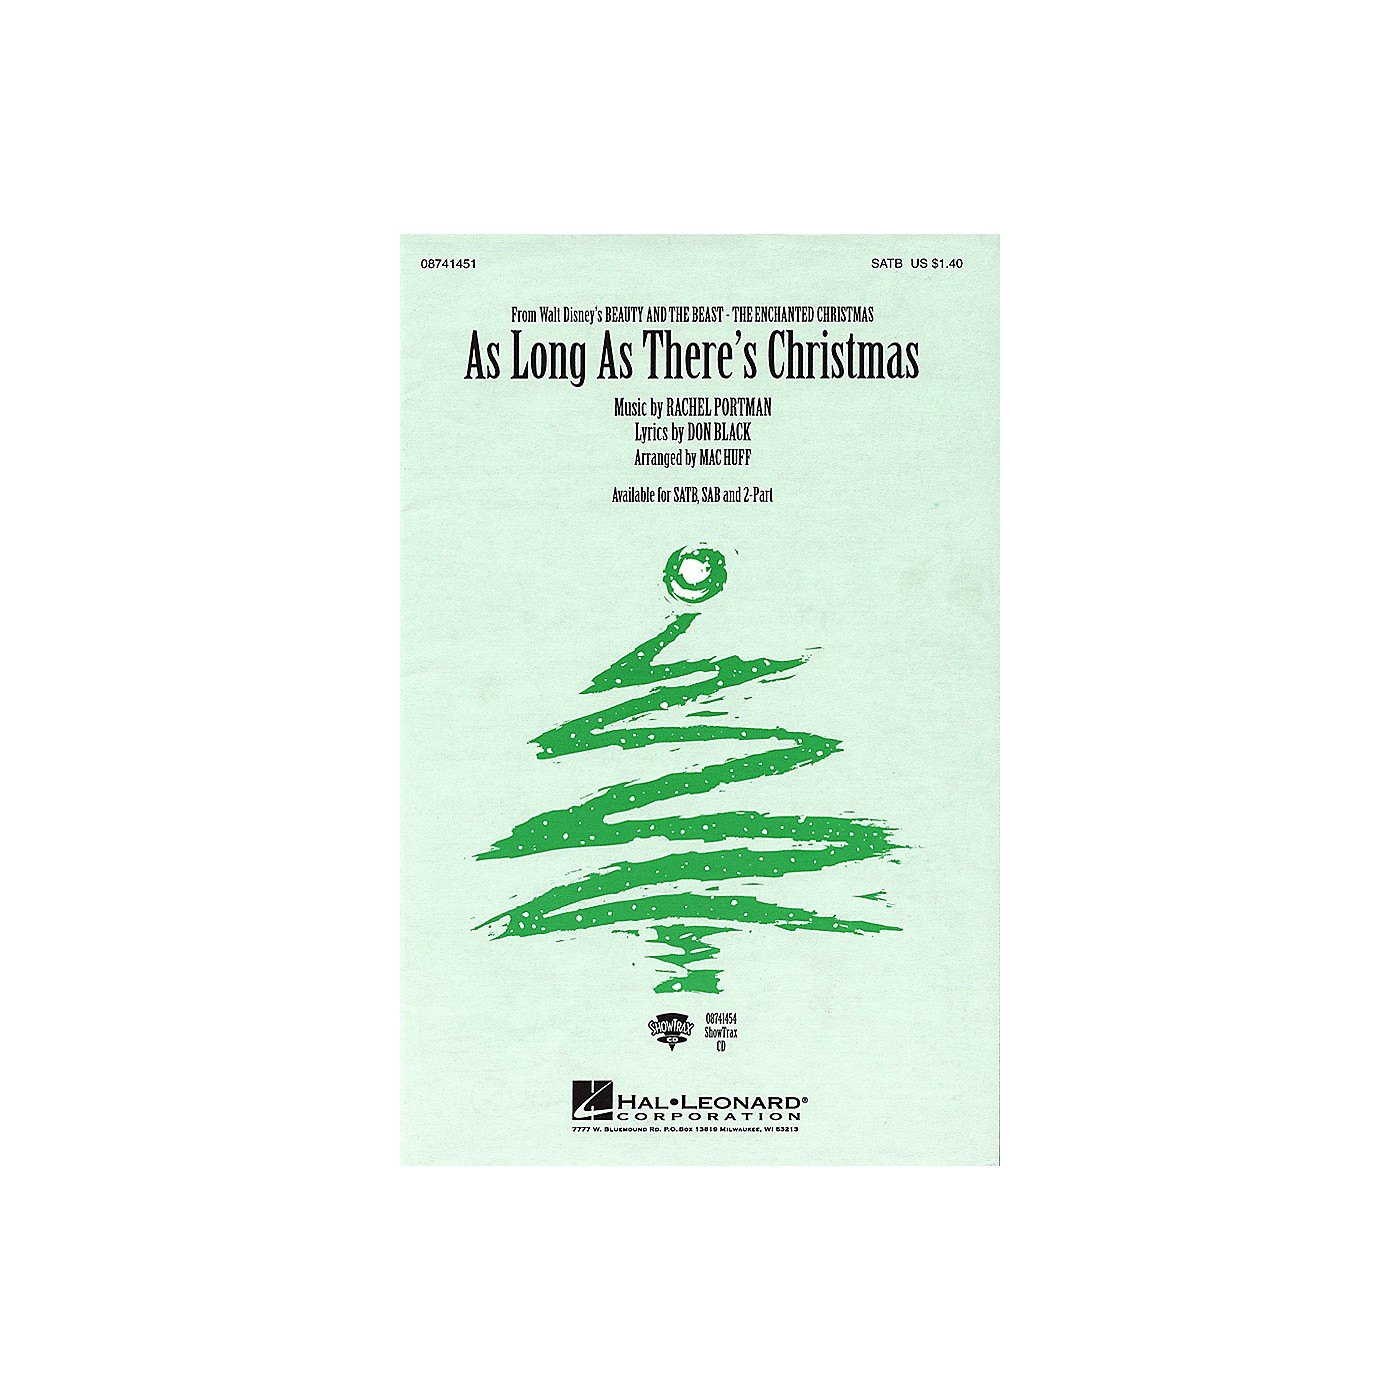 Hal Leonard As Long As There's Christmas (from Beauty and the Beast - The Enchanted Christmas) SATB arranged by Mac Huff thumbnail